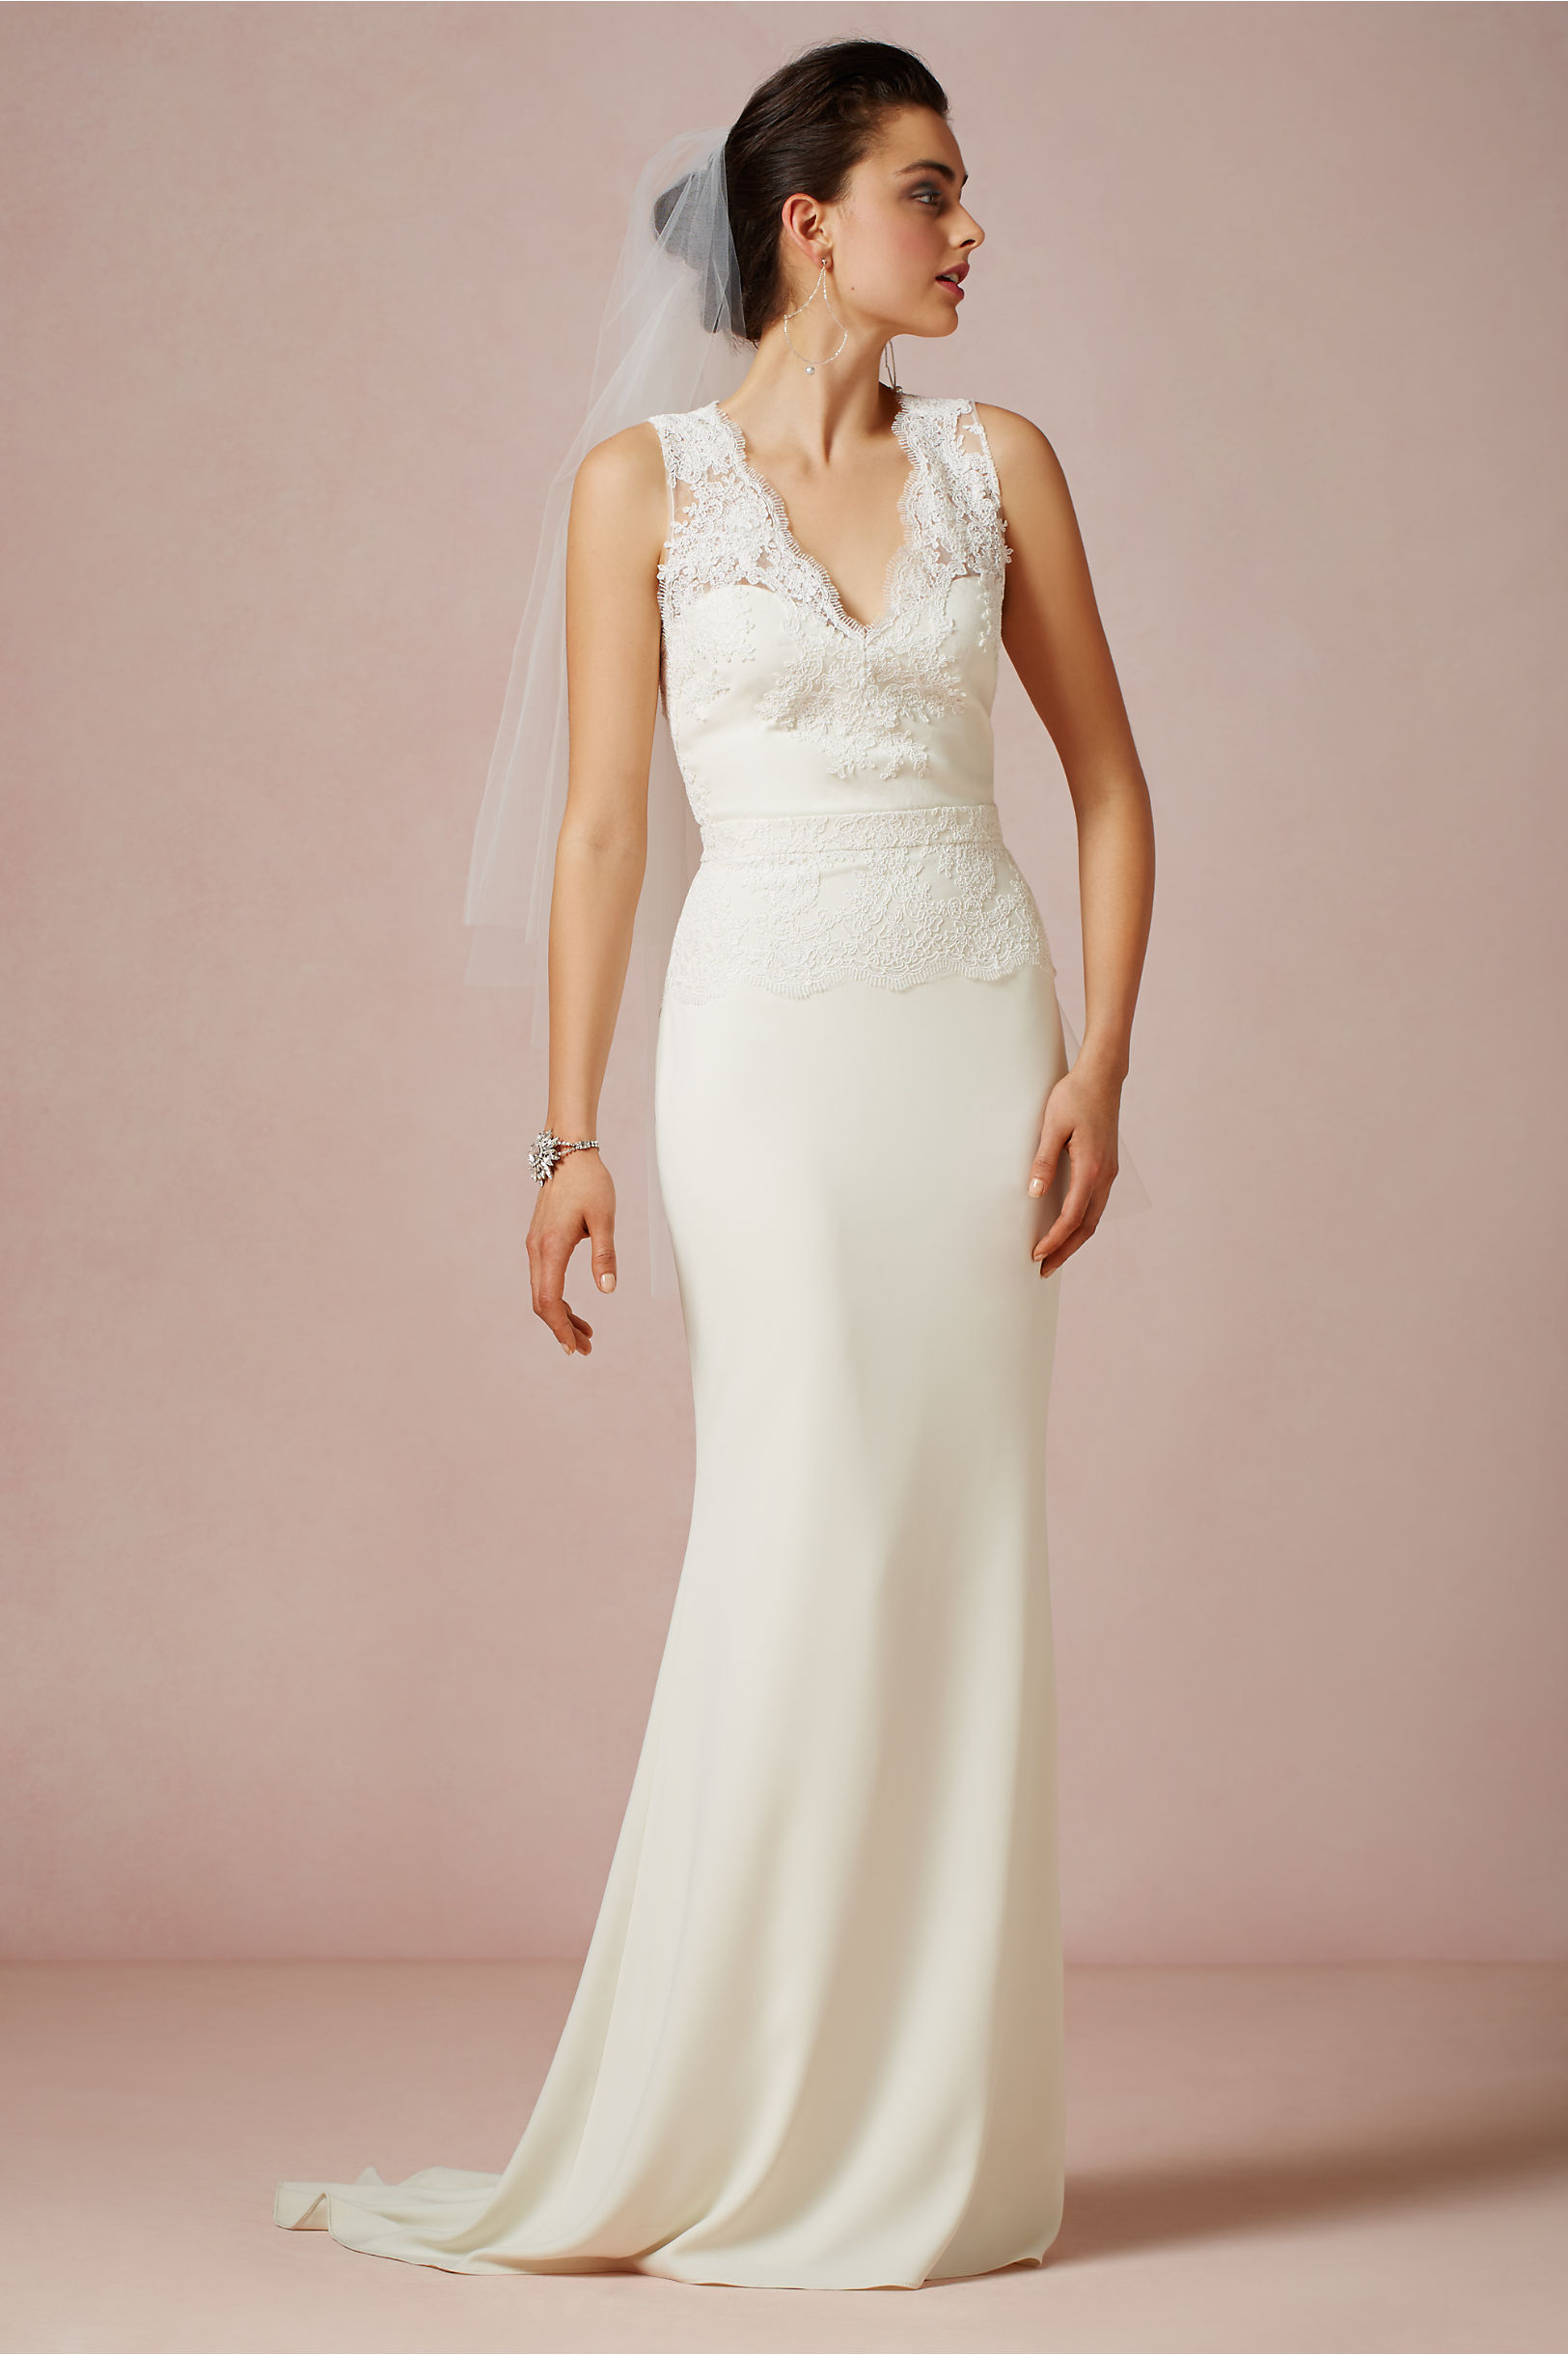 BHLDN 2014 Spring Bridal Collection (New In) | The FashionBrides